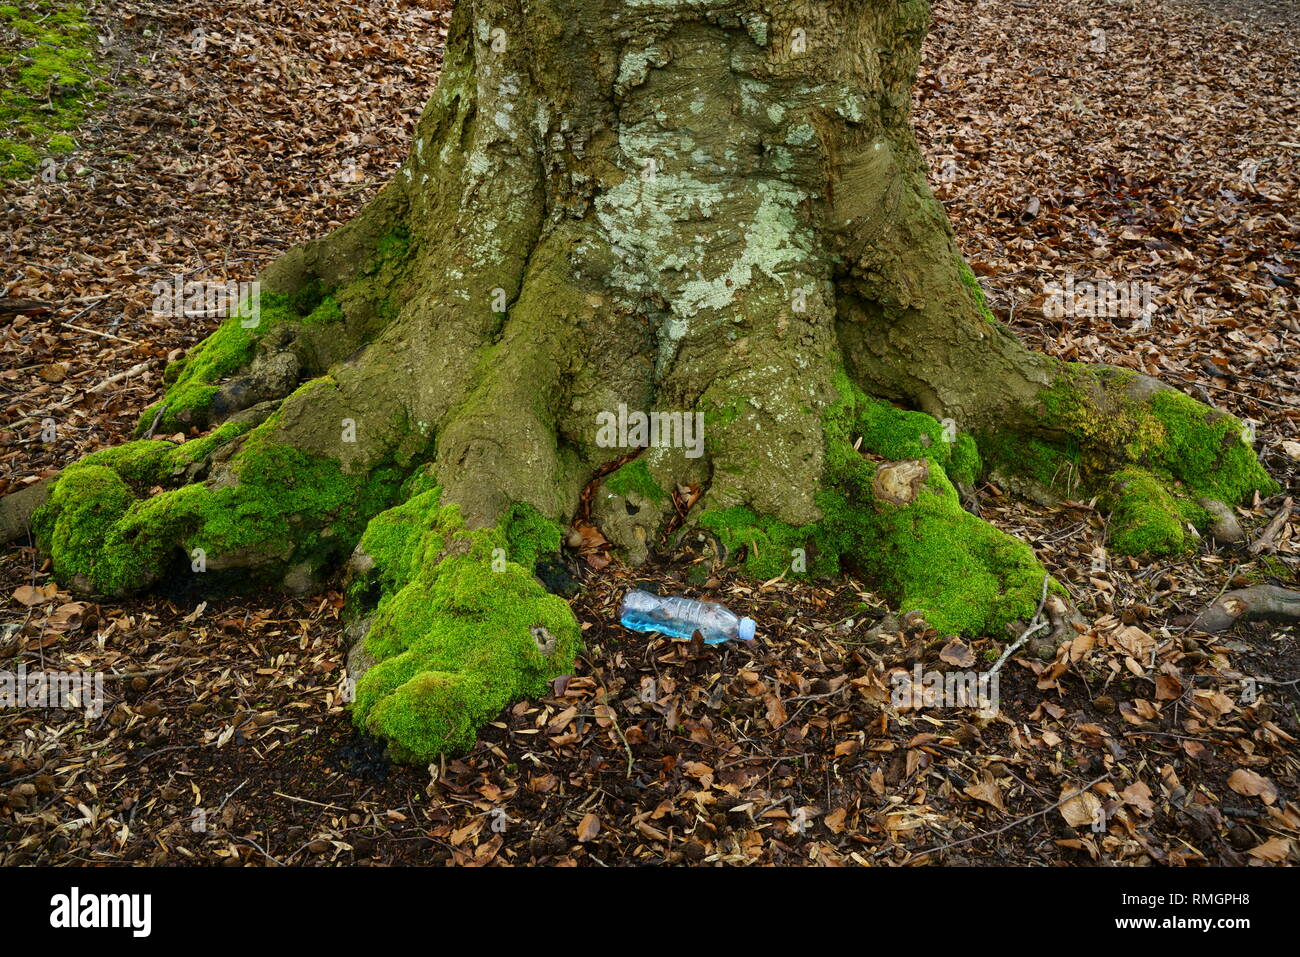 Plastic pollution UK, a plastic bottle littering the base of an ancient Beech tree. - Stock Image